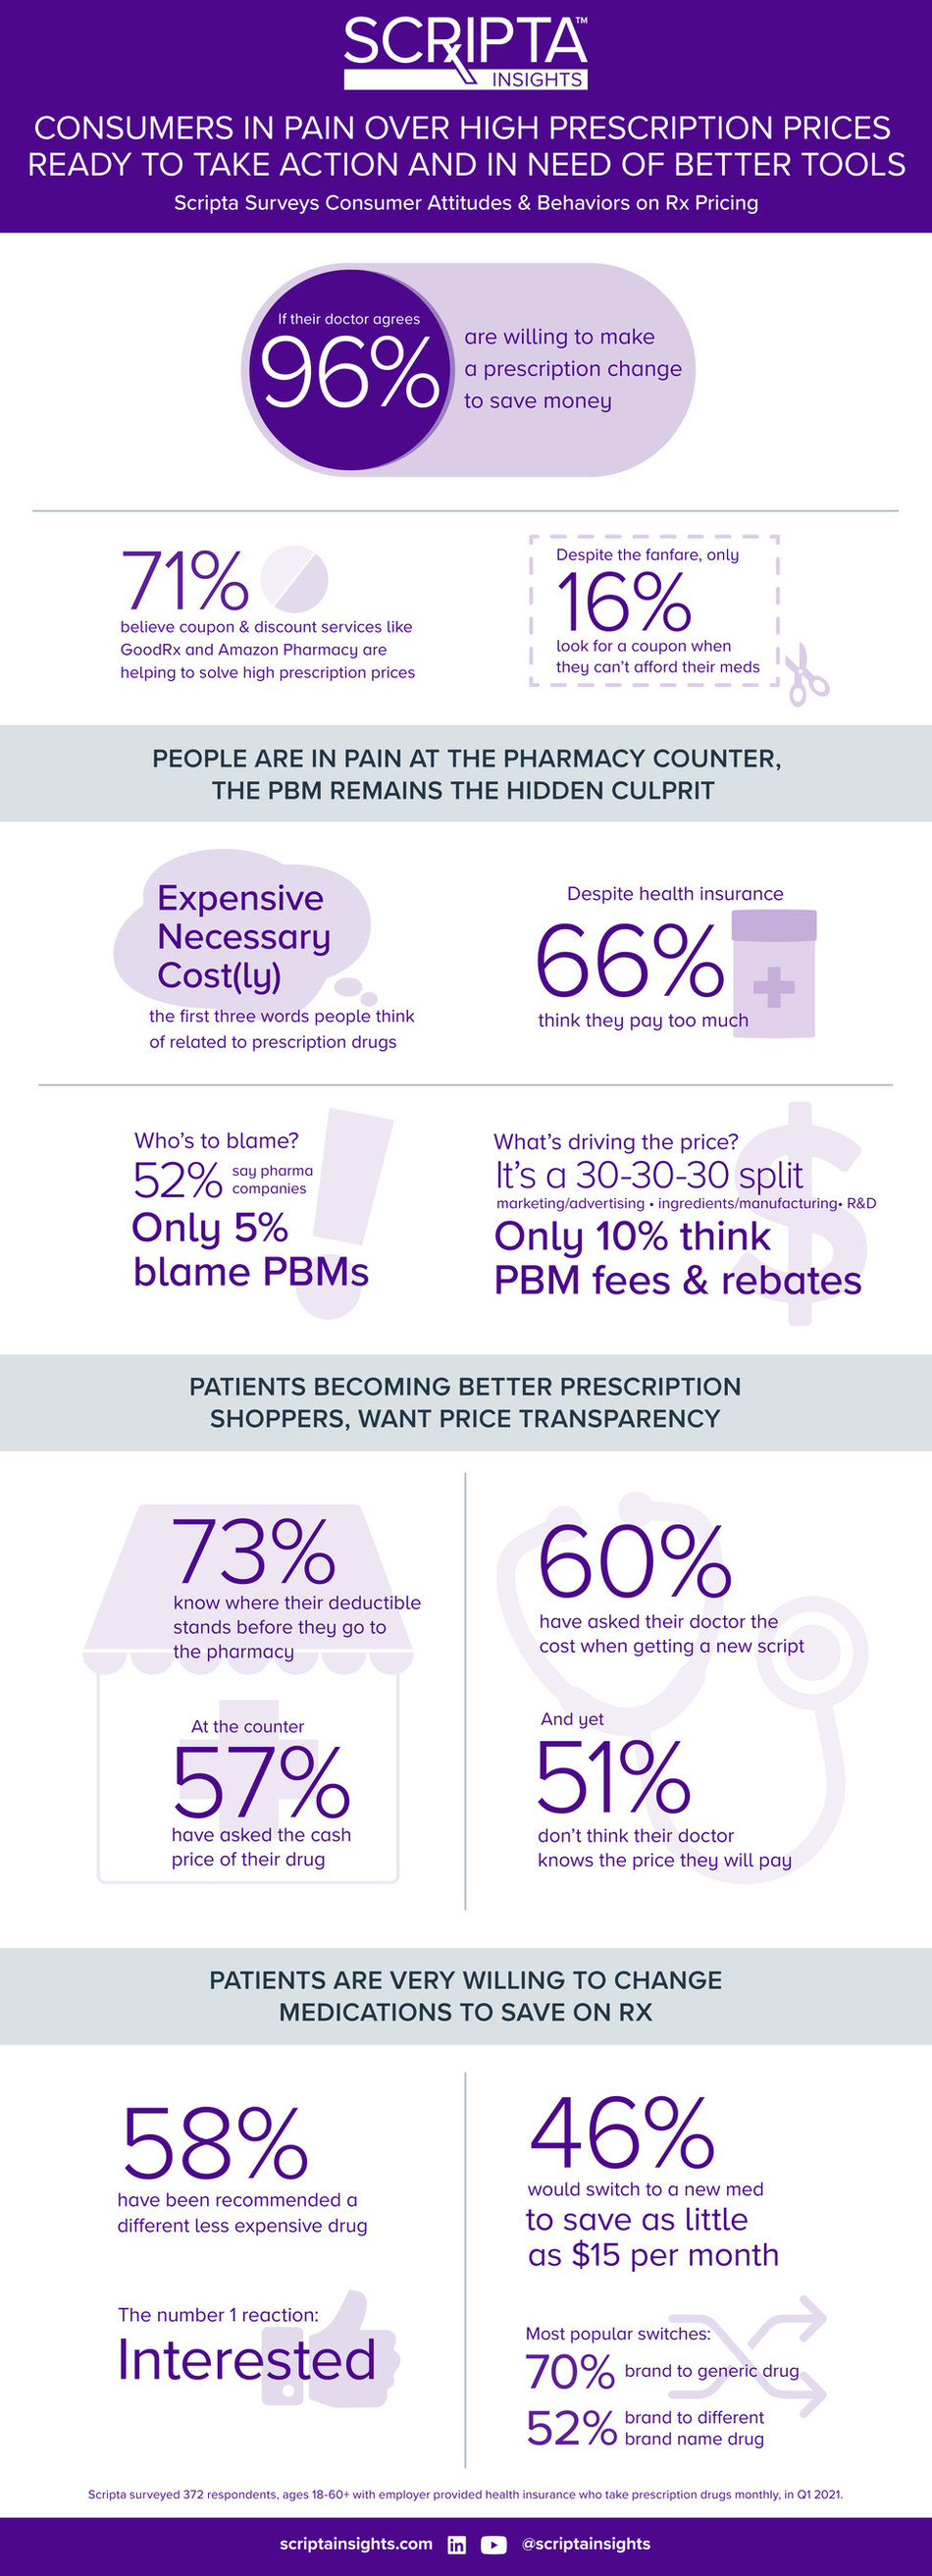 Scripta Insights released results of an online survey that explores consumers' attitudes and behaviors around prescription drug pricing in America.  Scripta is a cloud-based healthcare IT solution that helps self-insured employers contain their pharmacy benefit spend, while helping members get The Right Meds at the Best Price™.